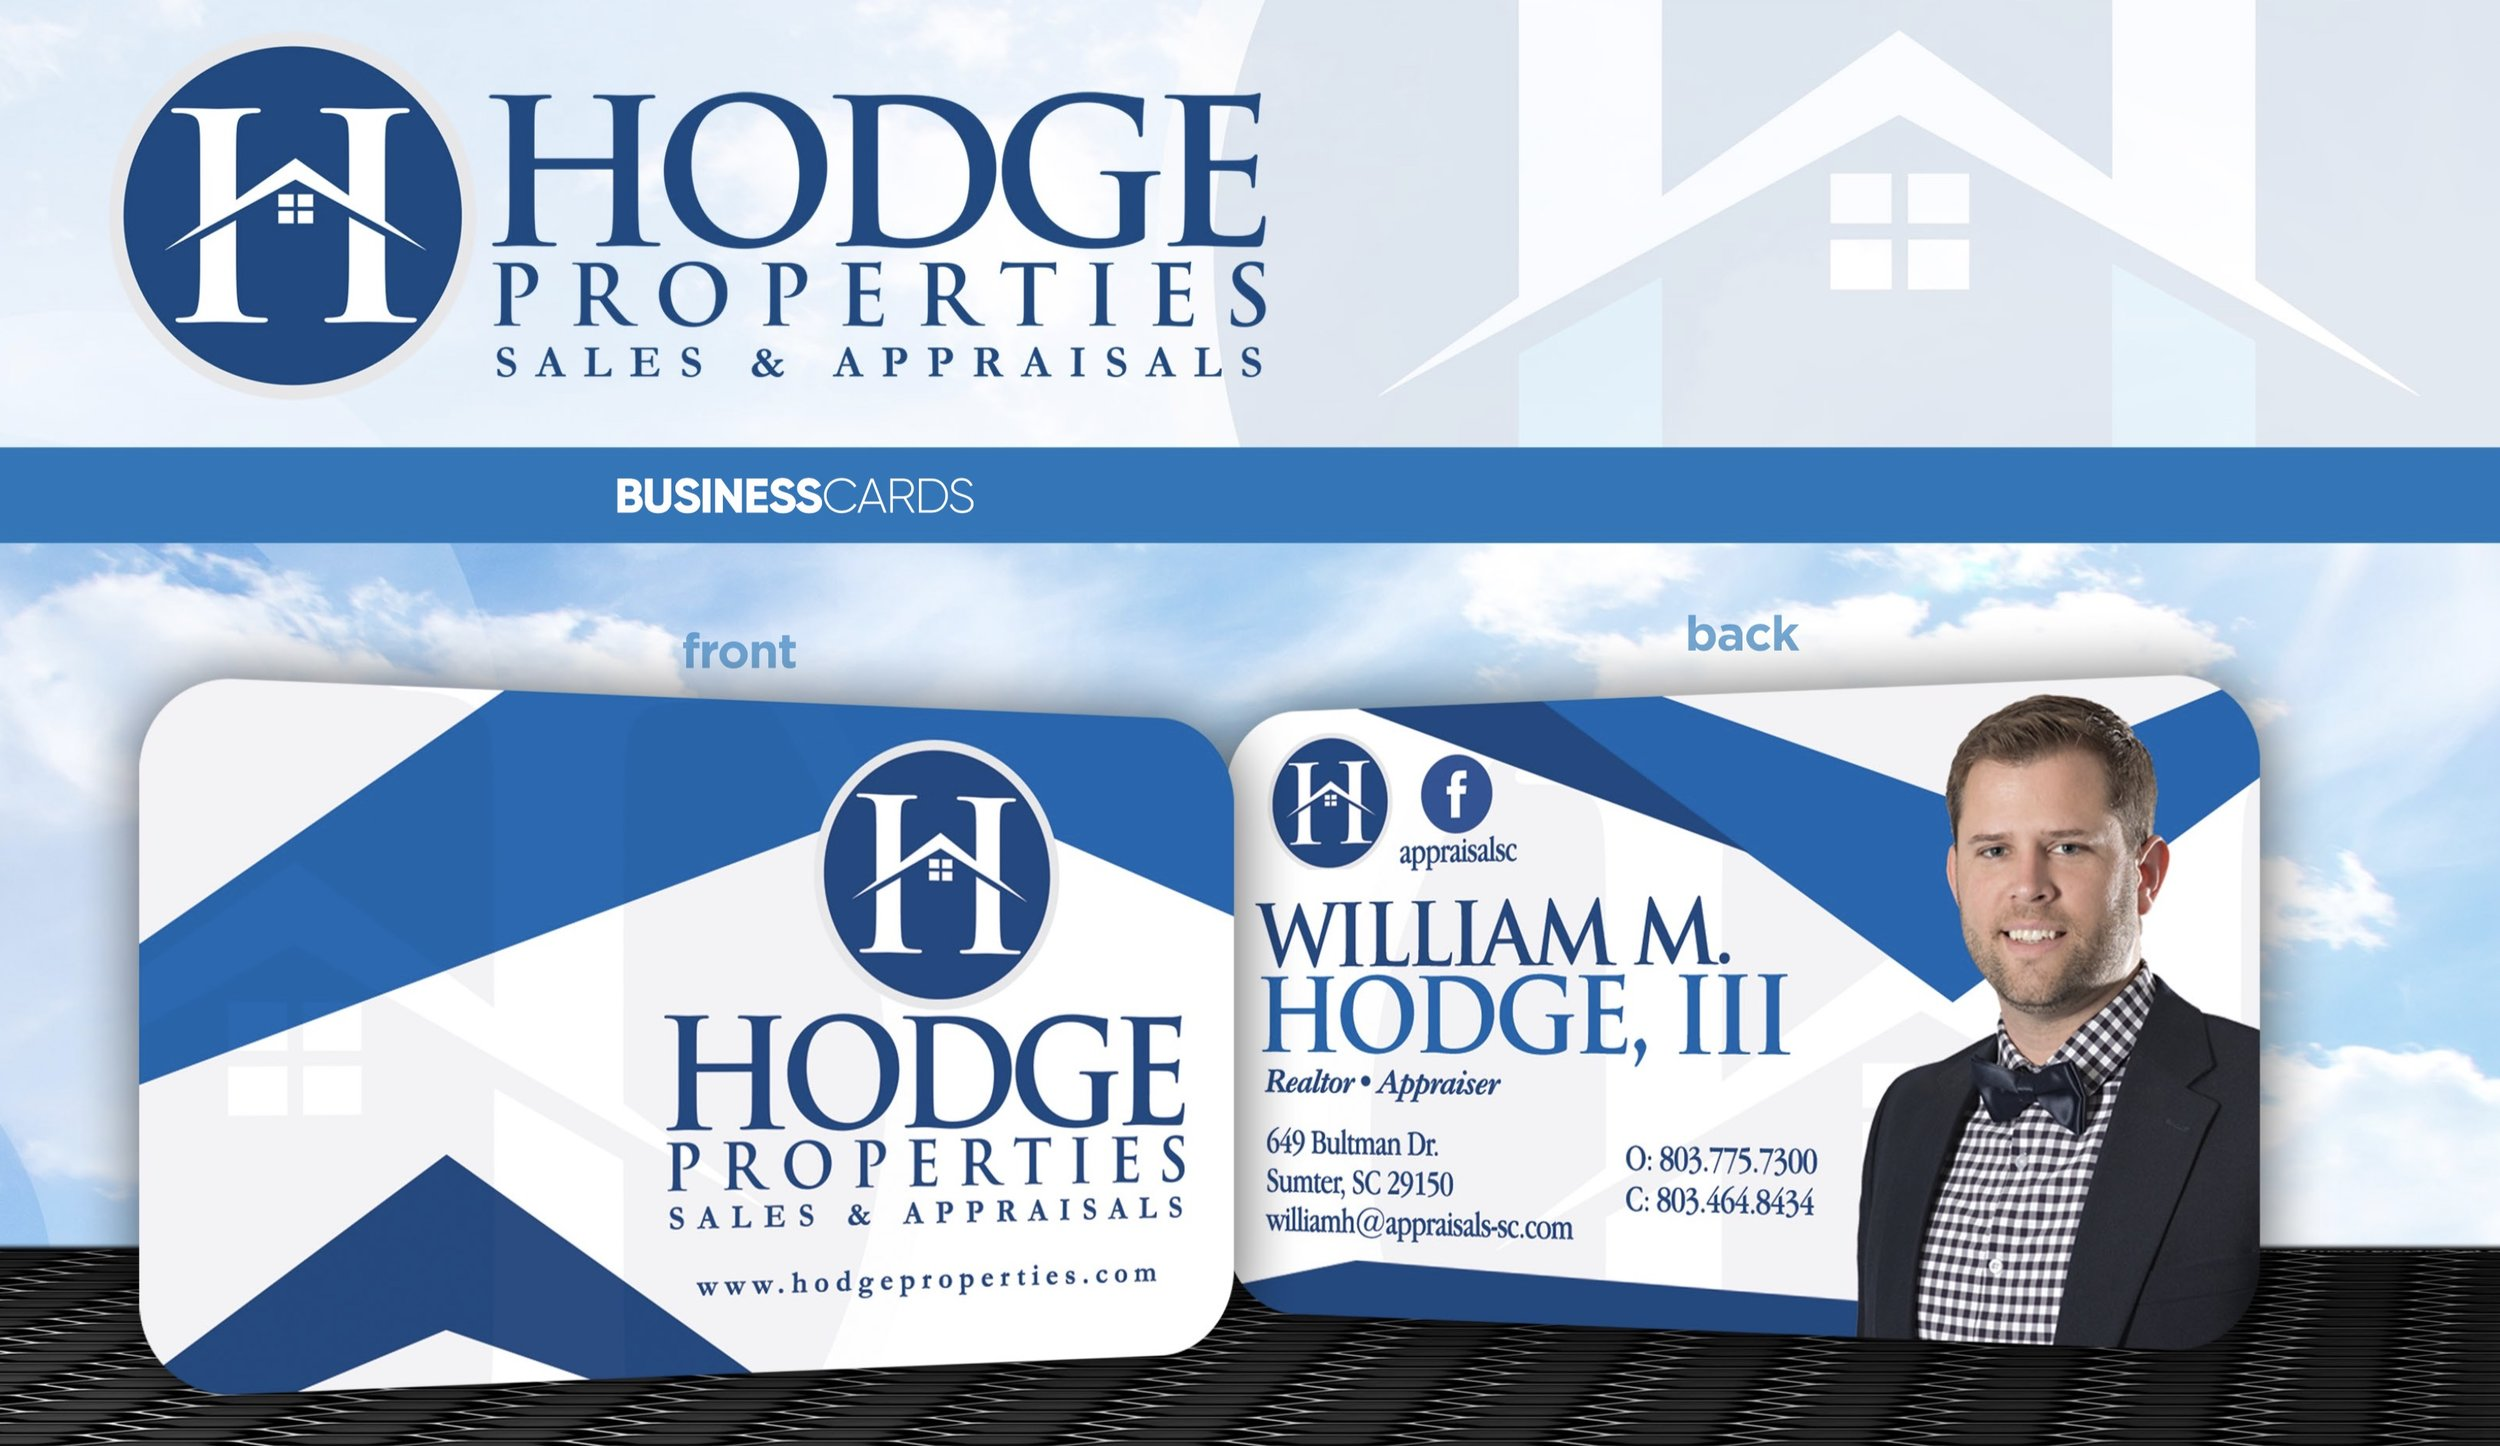 Business card and logo design for Hodge Properties. We printed them on 16pt UV high gloss with rounded corners.